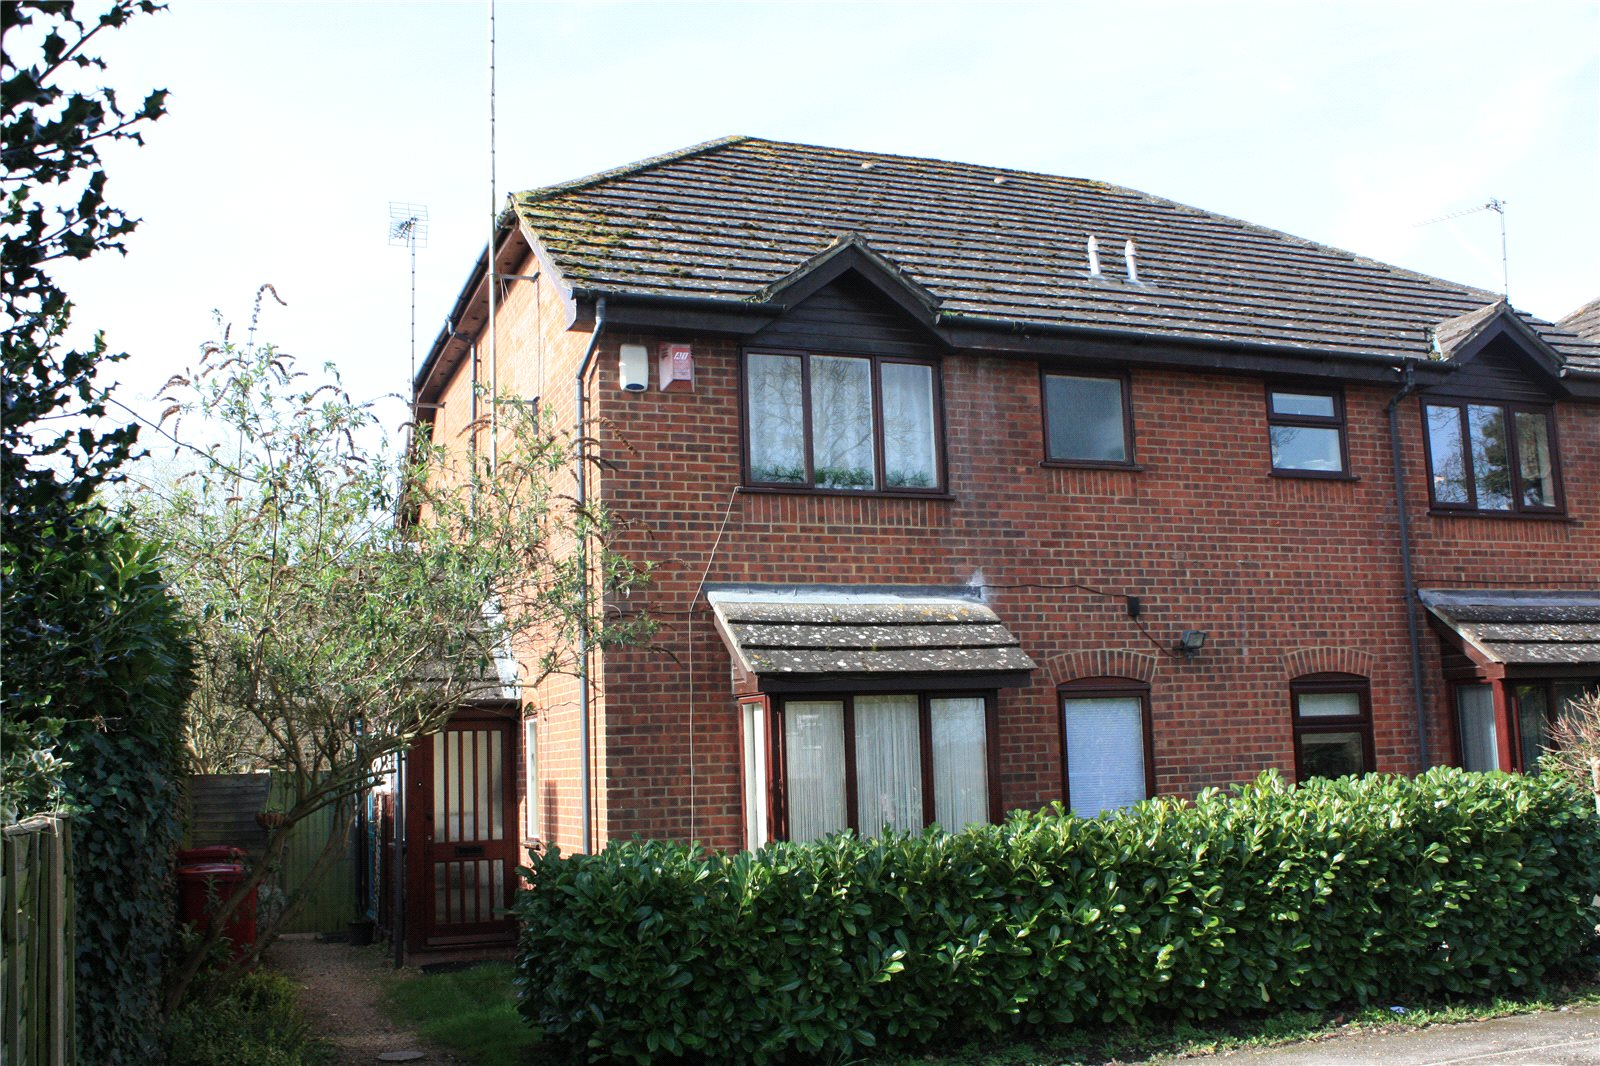 Parkers reading 1 bedroom house to rent in victoria mews - 1 bedroom house to rent in reading ...